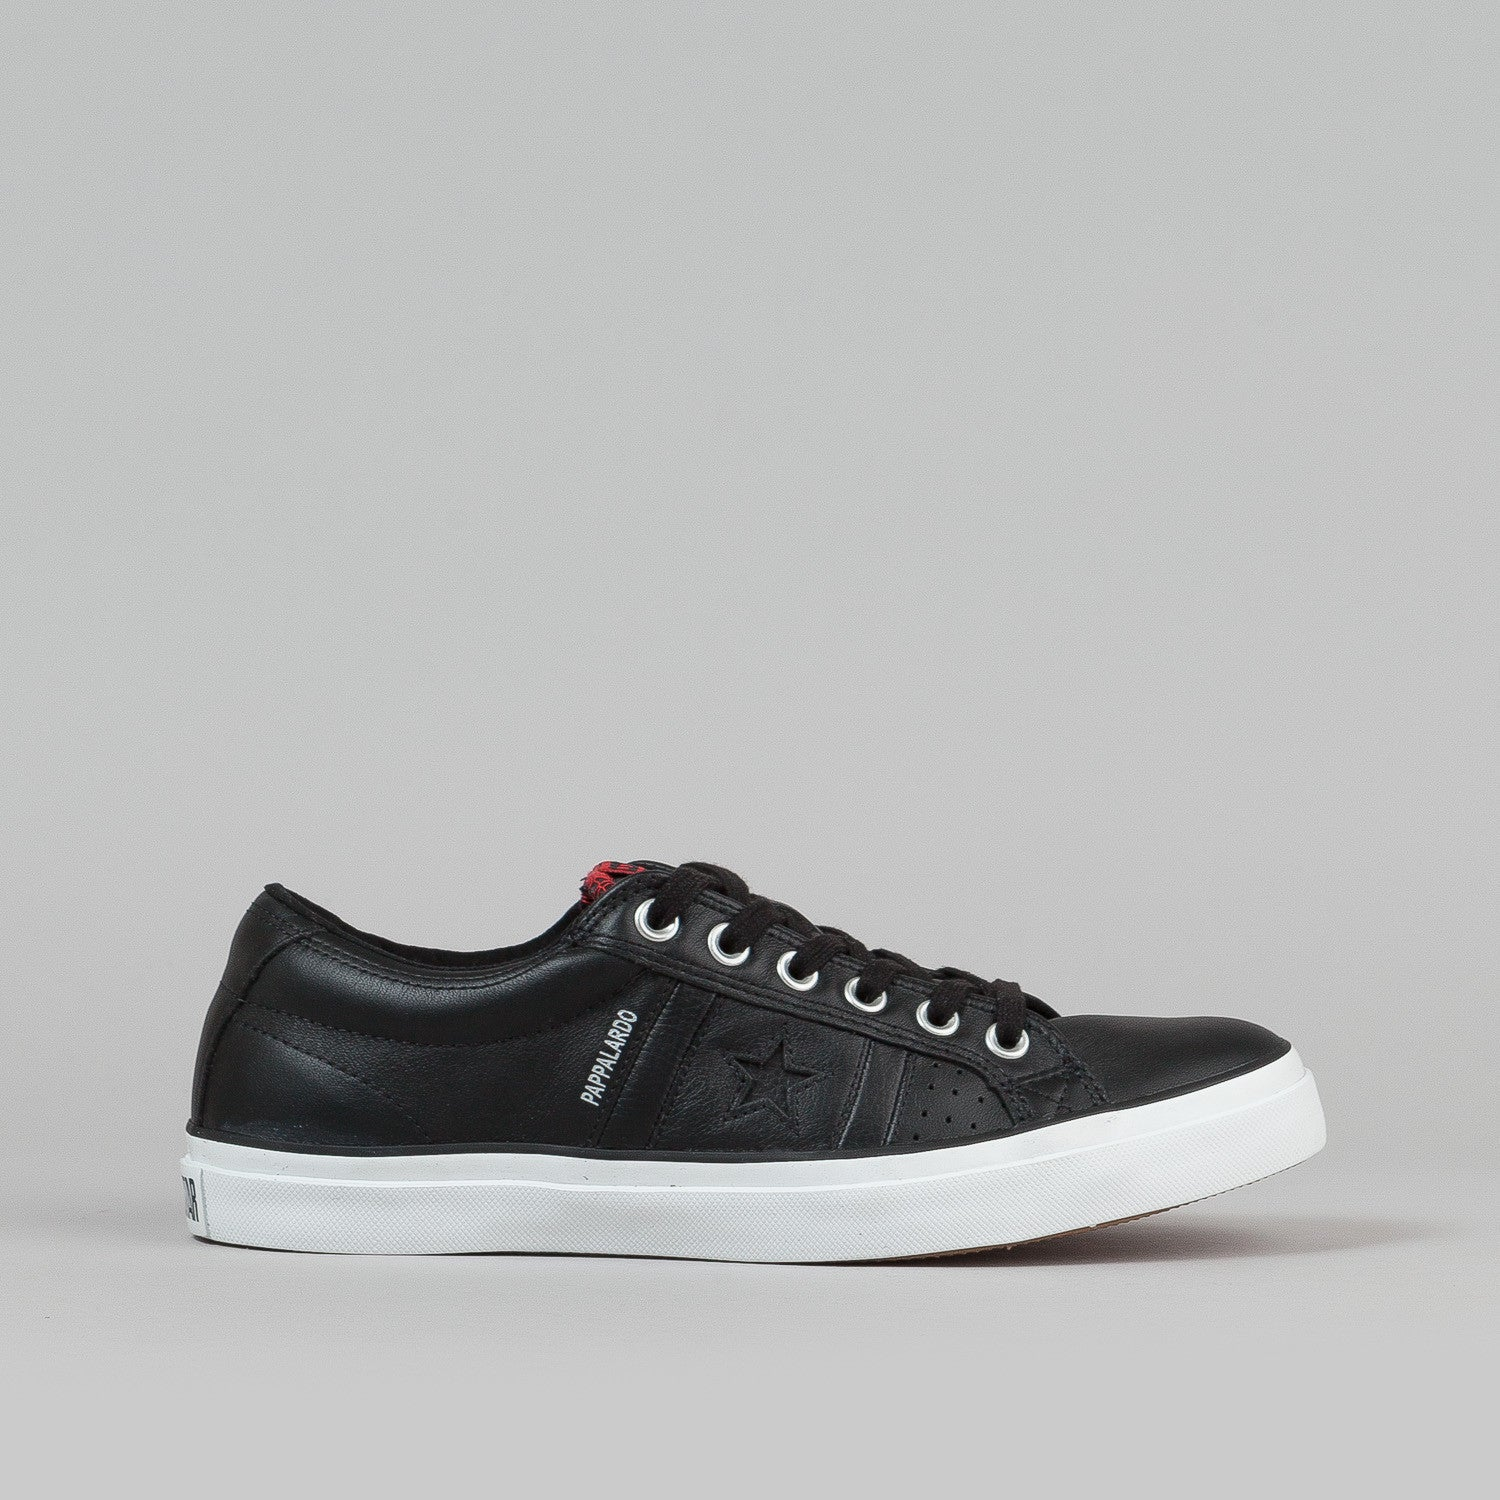 Converse Pappalardo OX Shoes